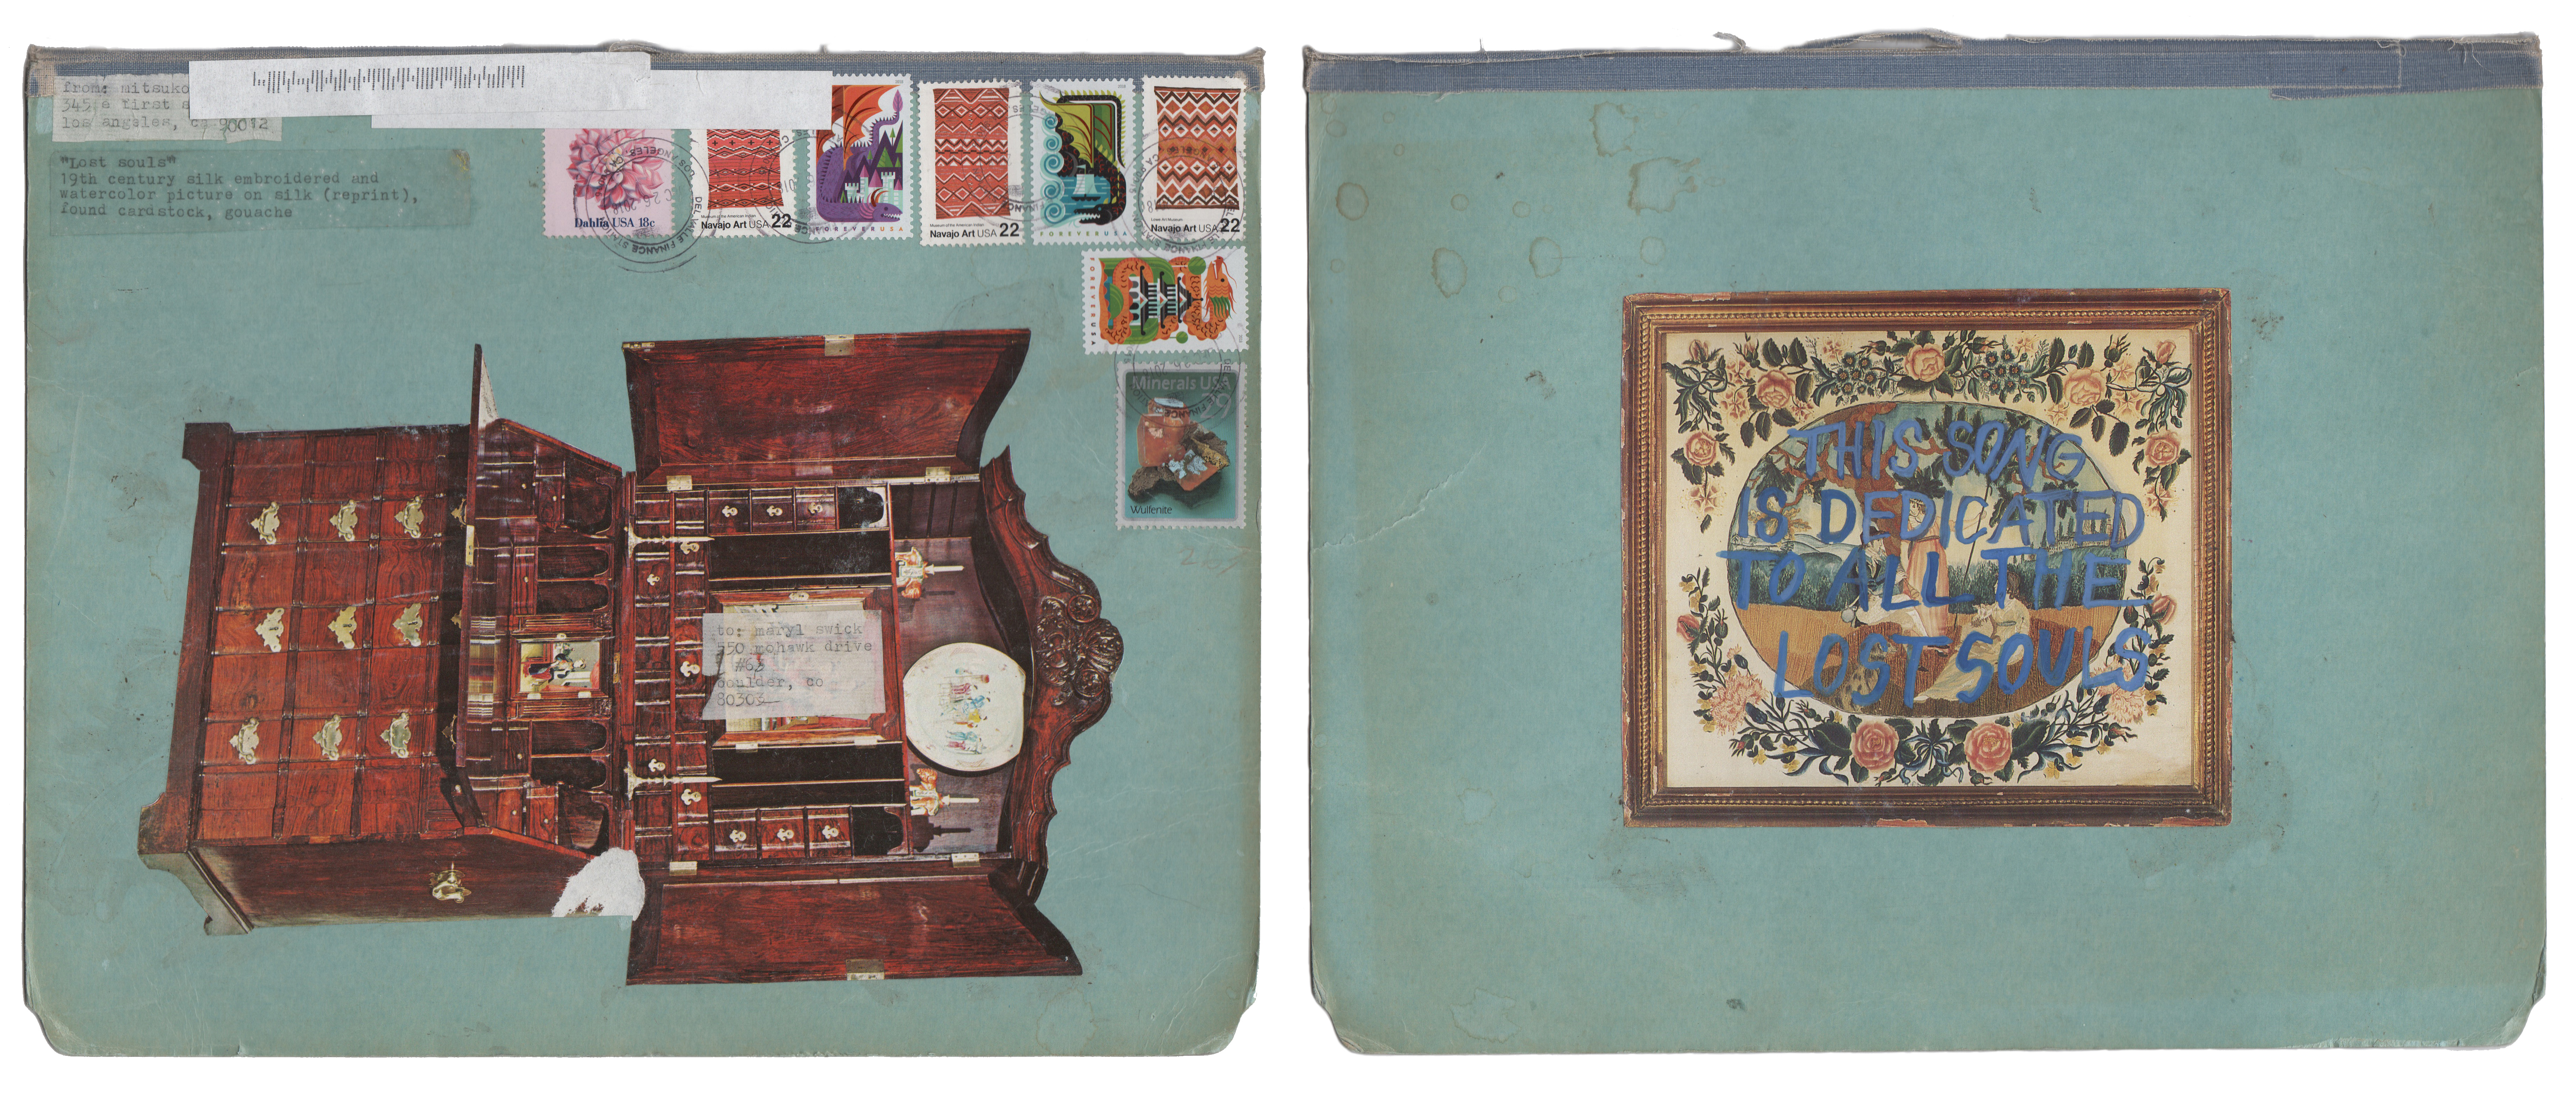 Mitsuko Brooks. <em>Mail to M.S., Dec. 26, 2018</em>, 2018. Ink, postage stamps, and paper collaged onto detached book cover, 5 3/8 x 8 1/2 inches (14.3 x 21.5 cm)